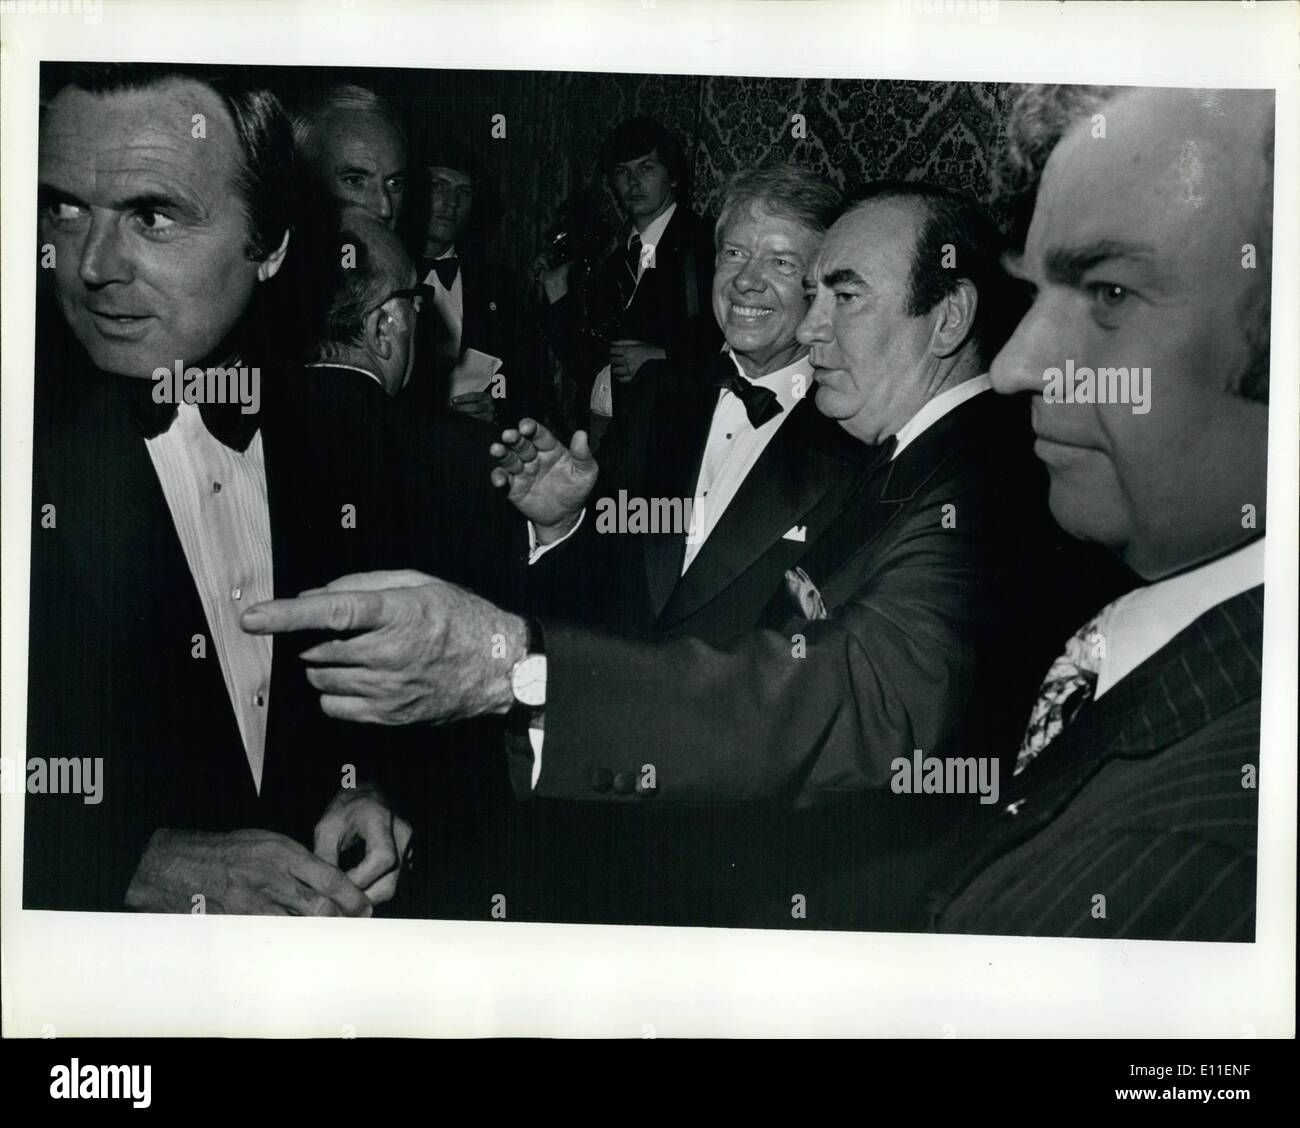 Jun. 06, 1977 - Grand Ballroom Of The Waldorf Astoria Hotel, New York City: President Carter Attended A 000.00 A Plate Fundraiser This Evening Sponsored By The Democratic National Committee. Photo shows President Carter Being Introduced To Various New York Democratic Fat Cats By New York Governor Hugh Carey. - Stock Image